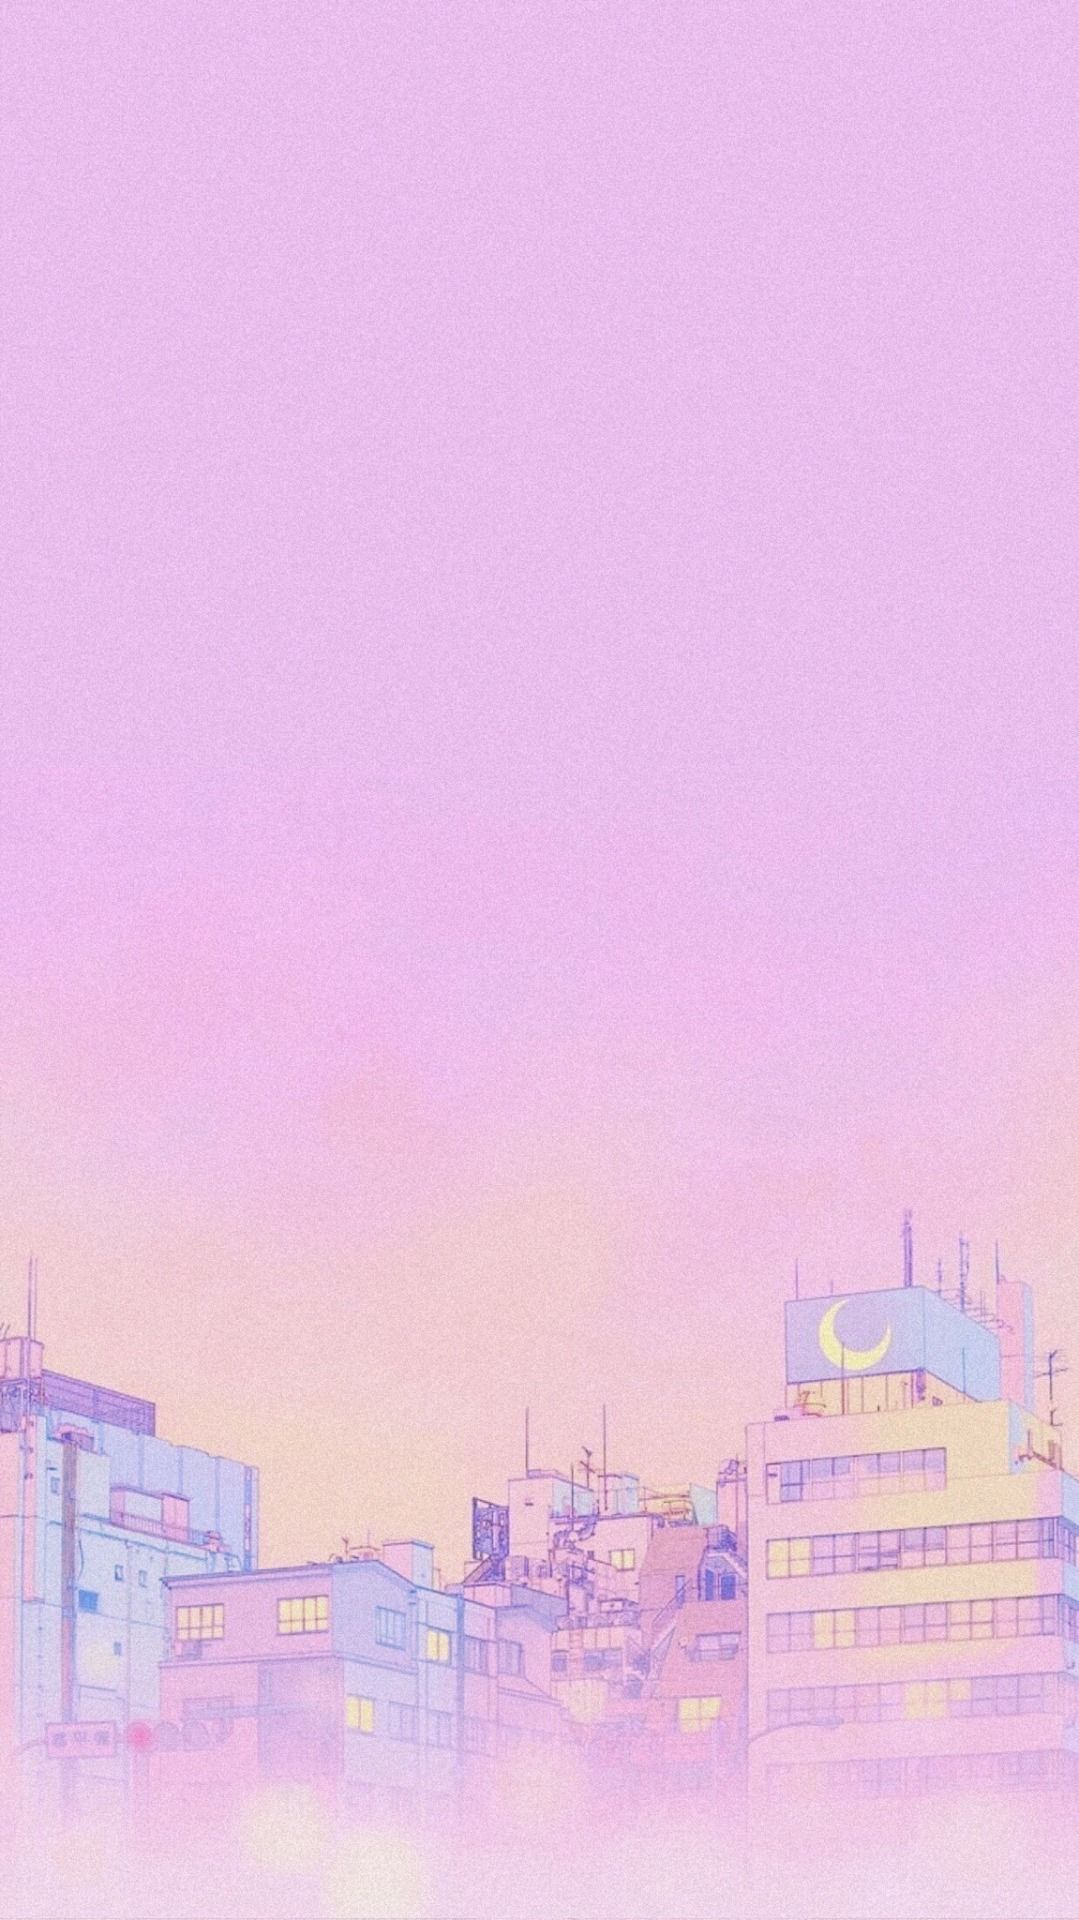 Pin By Ig 980817 On Waℓℓrareyaѕ Anime Wallpaper Iphone Kawaii Wallpaper Cute Pastel Wallpaper